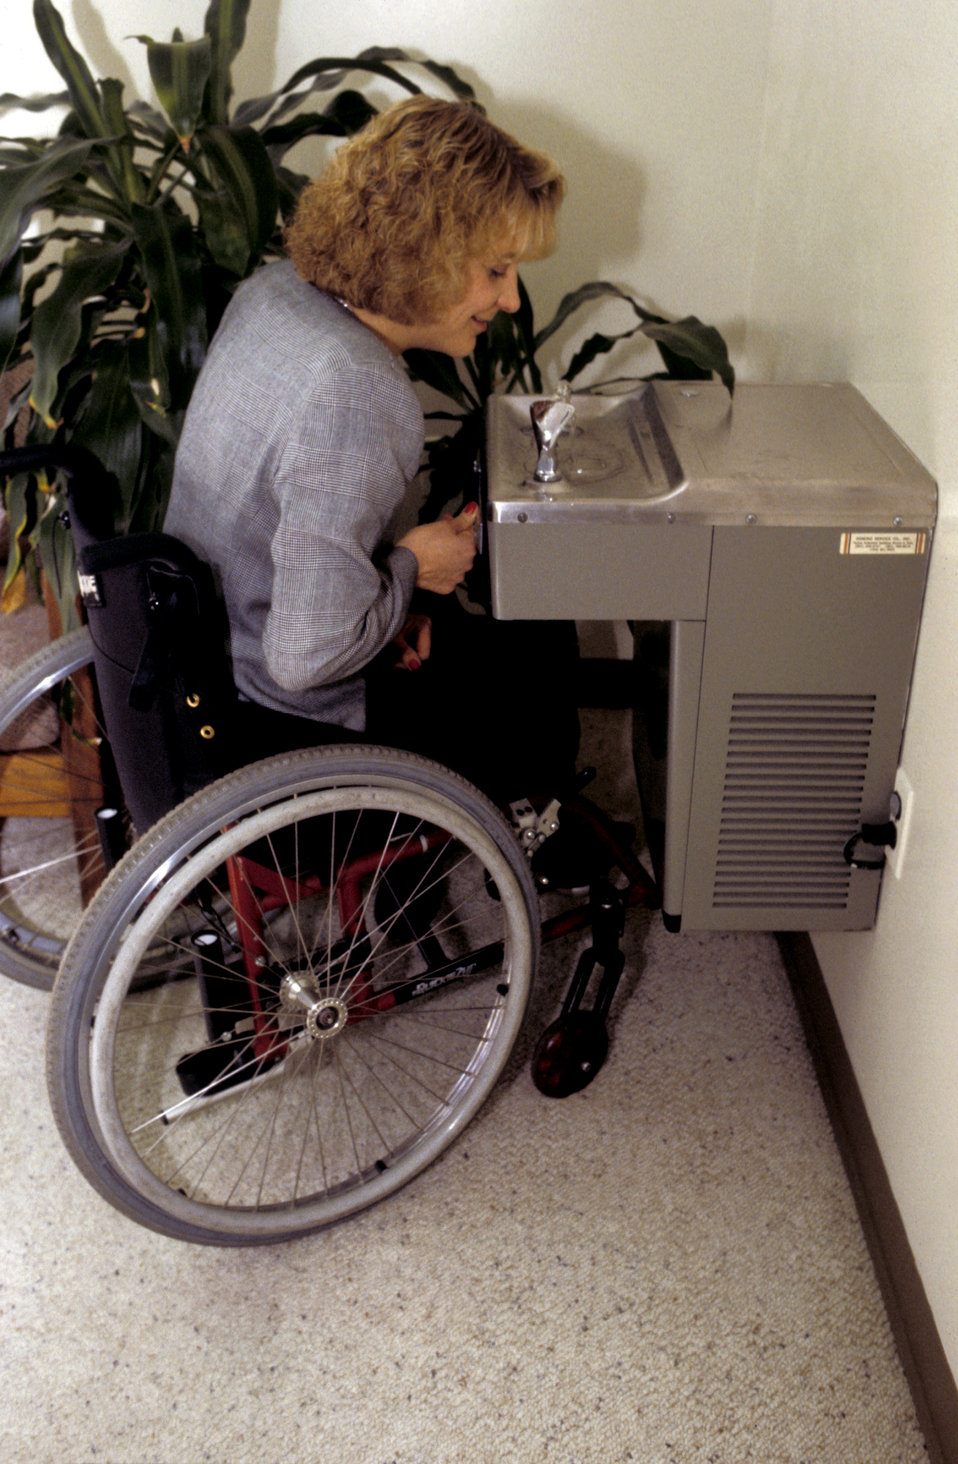 In this 1998 image, a wheelchair-seated woman was about to drink from a stainless steel water fountain which offered two spouts arranged at